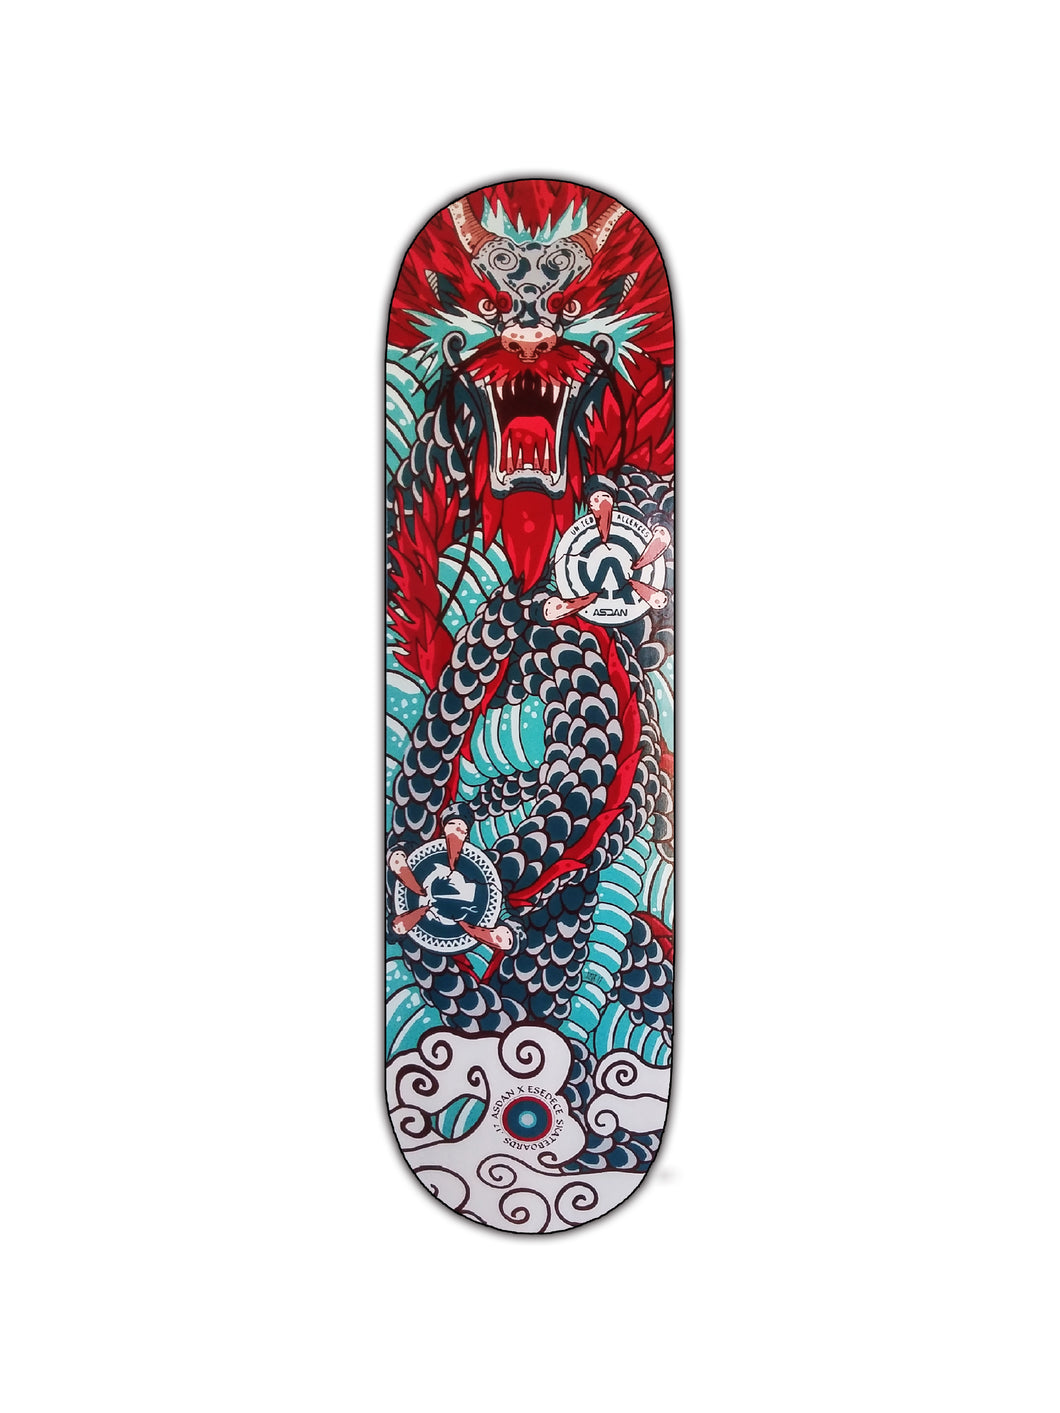 SKATE DECK  COLLABORATION ASDAN DRAGON X ESEDECE SKATEBOARDS - Esedece skateboards